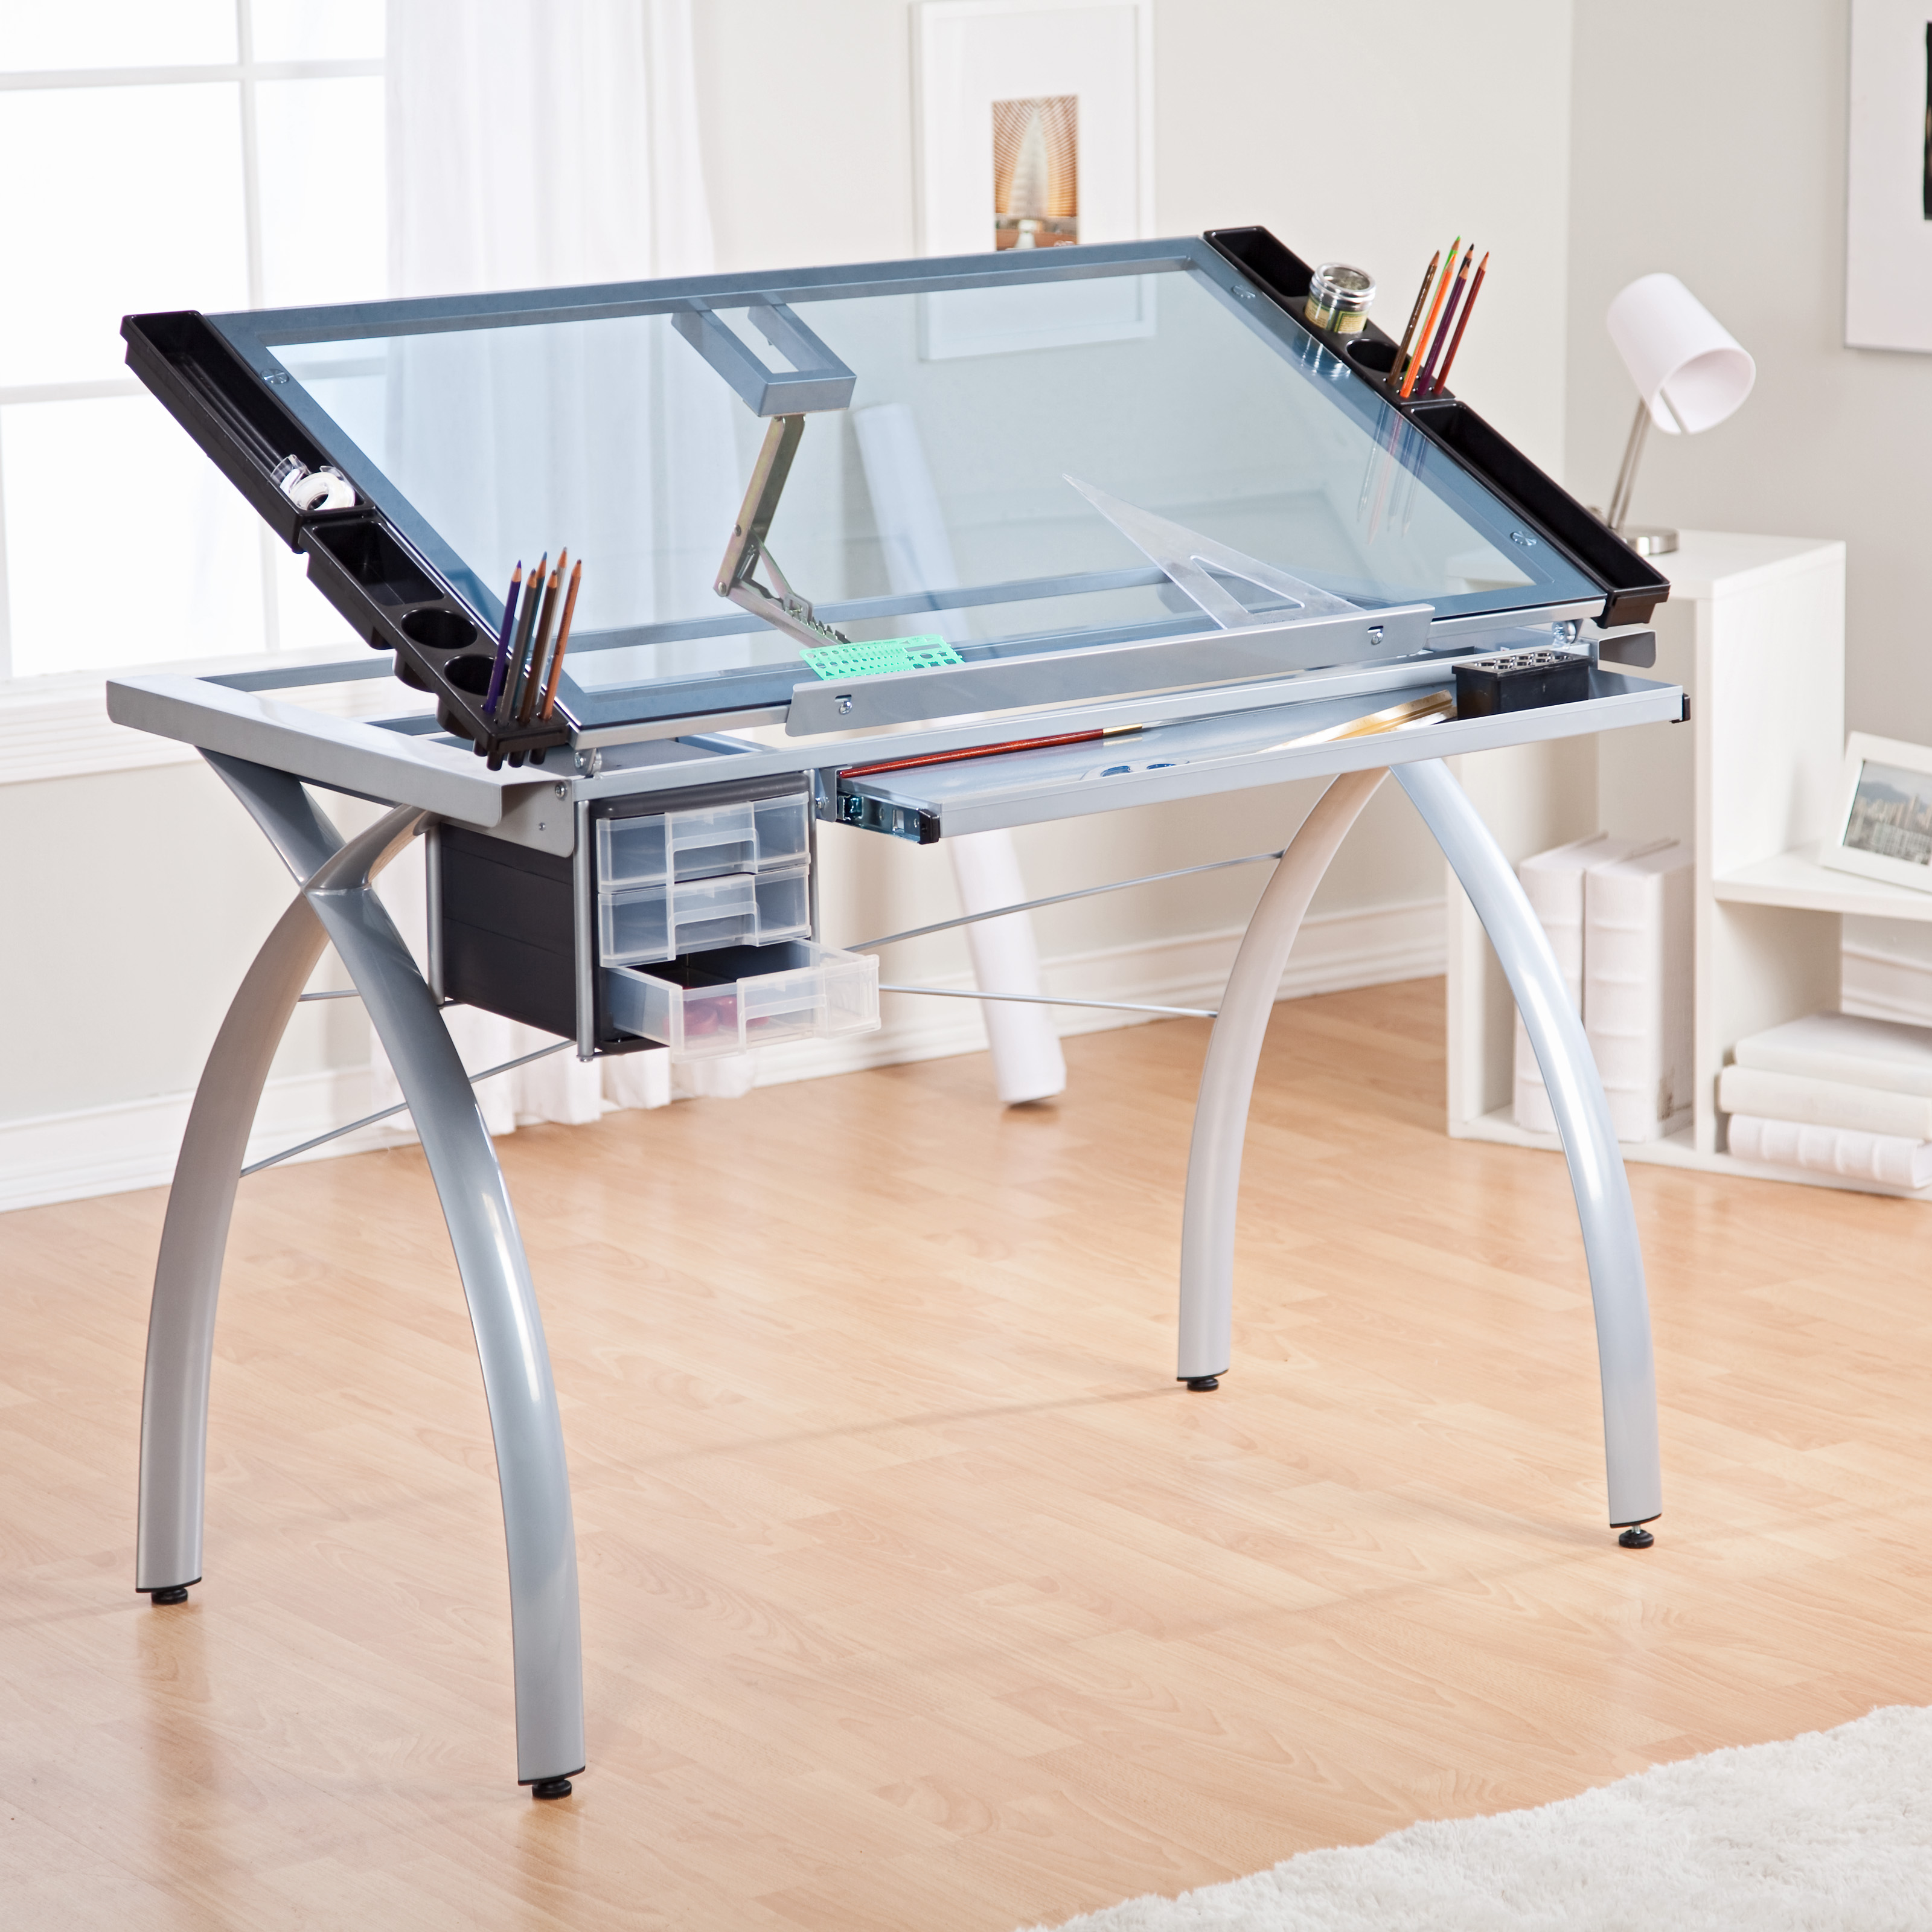 Studio Design Drafting Table tech drafting table Studio Designs Futura Craft Station With Glass Top Drafting Drawing Tables At Hayneedle